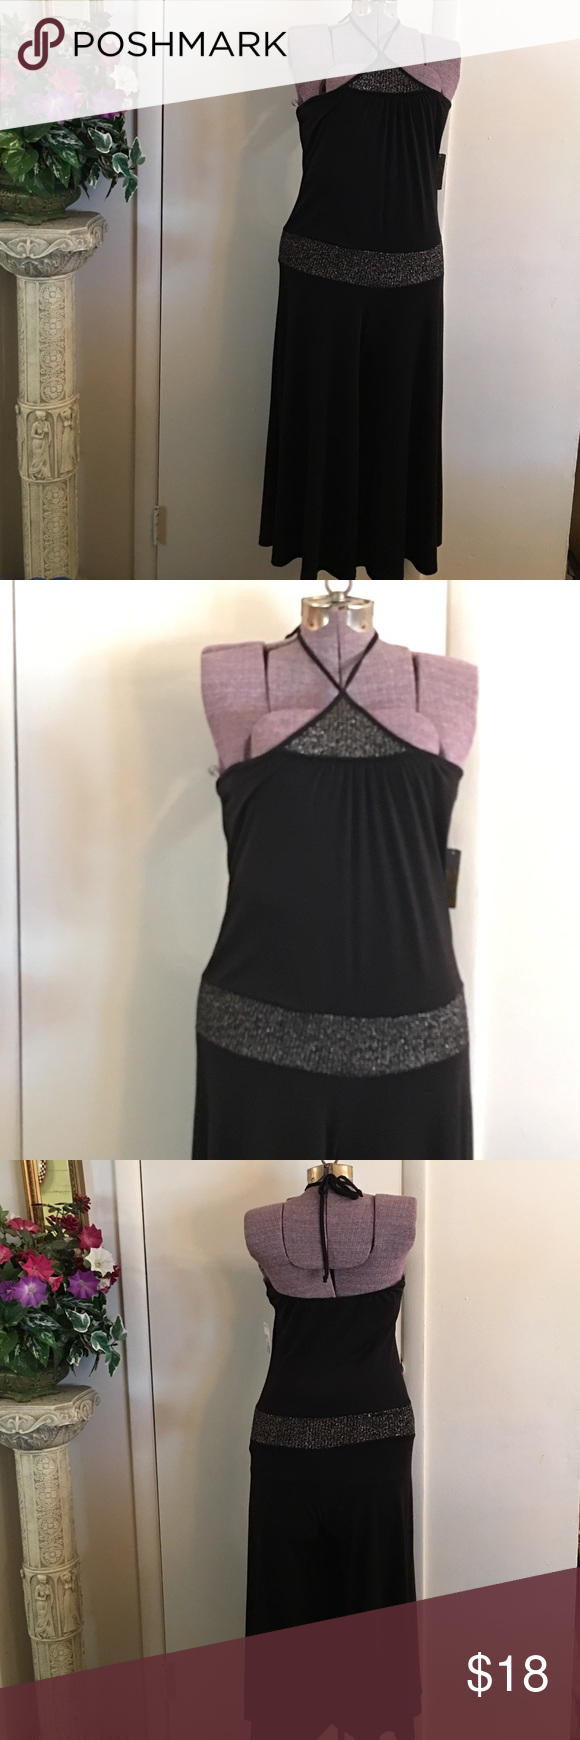 New Black Halter Jumpsuit  New Black halter jumpsuit, halter tie around the neck in back,  silver shimmery contrast, below knee length, 45% polyester 45% rayon 10% spandex, (silver thread snag on last pic) won't notice while wearing Twenty one Pants Jumpsuits & Rompers